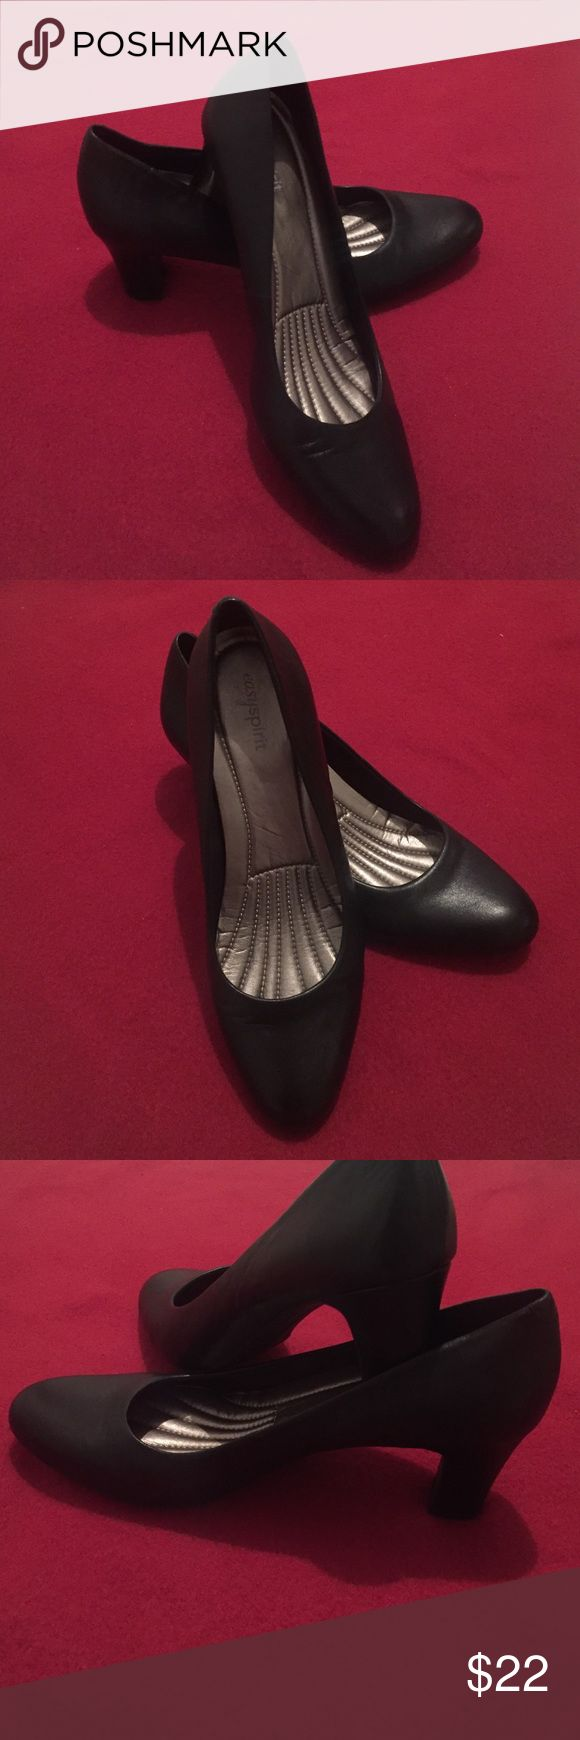 Easy Spirit heels ! Cute simple and OH SO comfortable sole! Leather black heels that can be worn on a casual day all day long as well as a business meeting or a conference weekend ! Perfect for flight attendants! Shoe says 9 but fits like a 8,8 1/2 for sure! Easy Spirit Shoes Heels